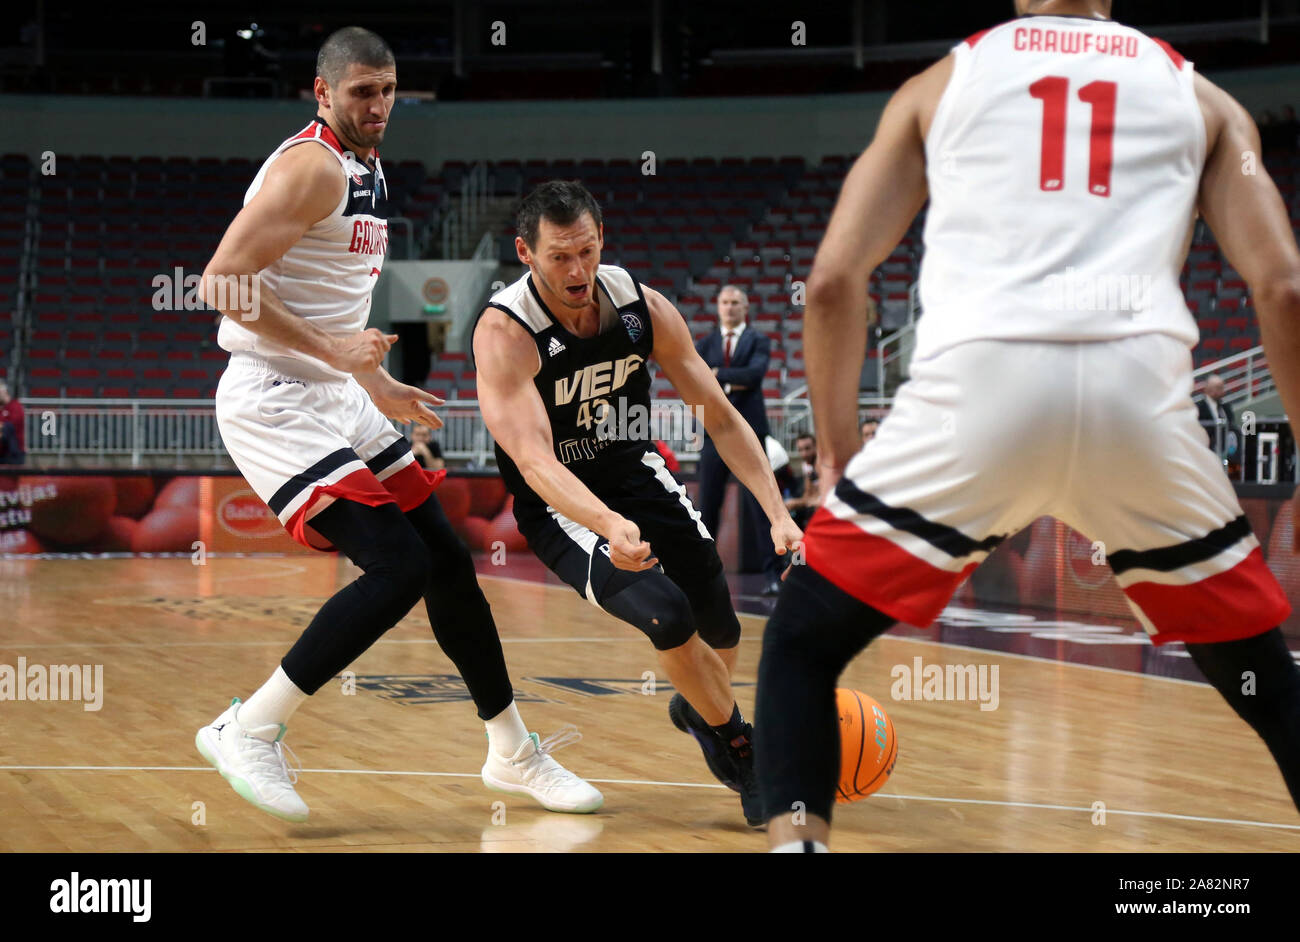 Riga, Latvia. 5th Nov, 2019. Janis Blums (C) of VEF Riga breaks through during the group C match at Europe Basketball Champions League in Riga, Latvia, on Nov. 5, 2019. Credit: Edijs Palens/Xinhua/Alamy Live News Stock Photo